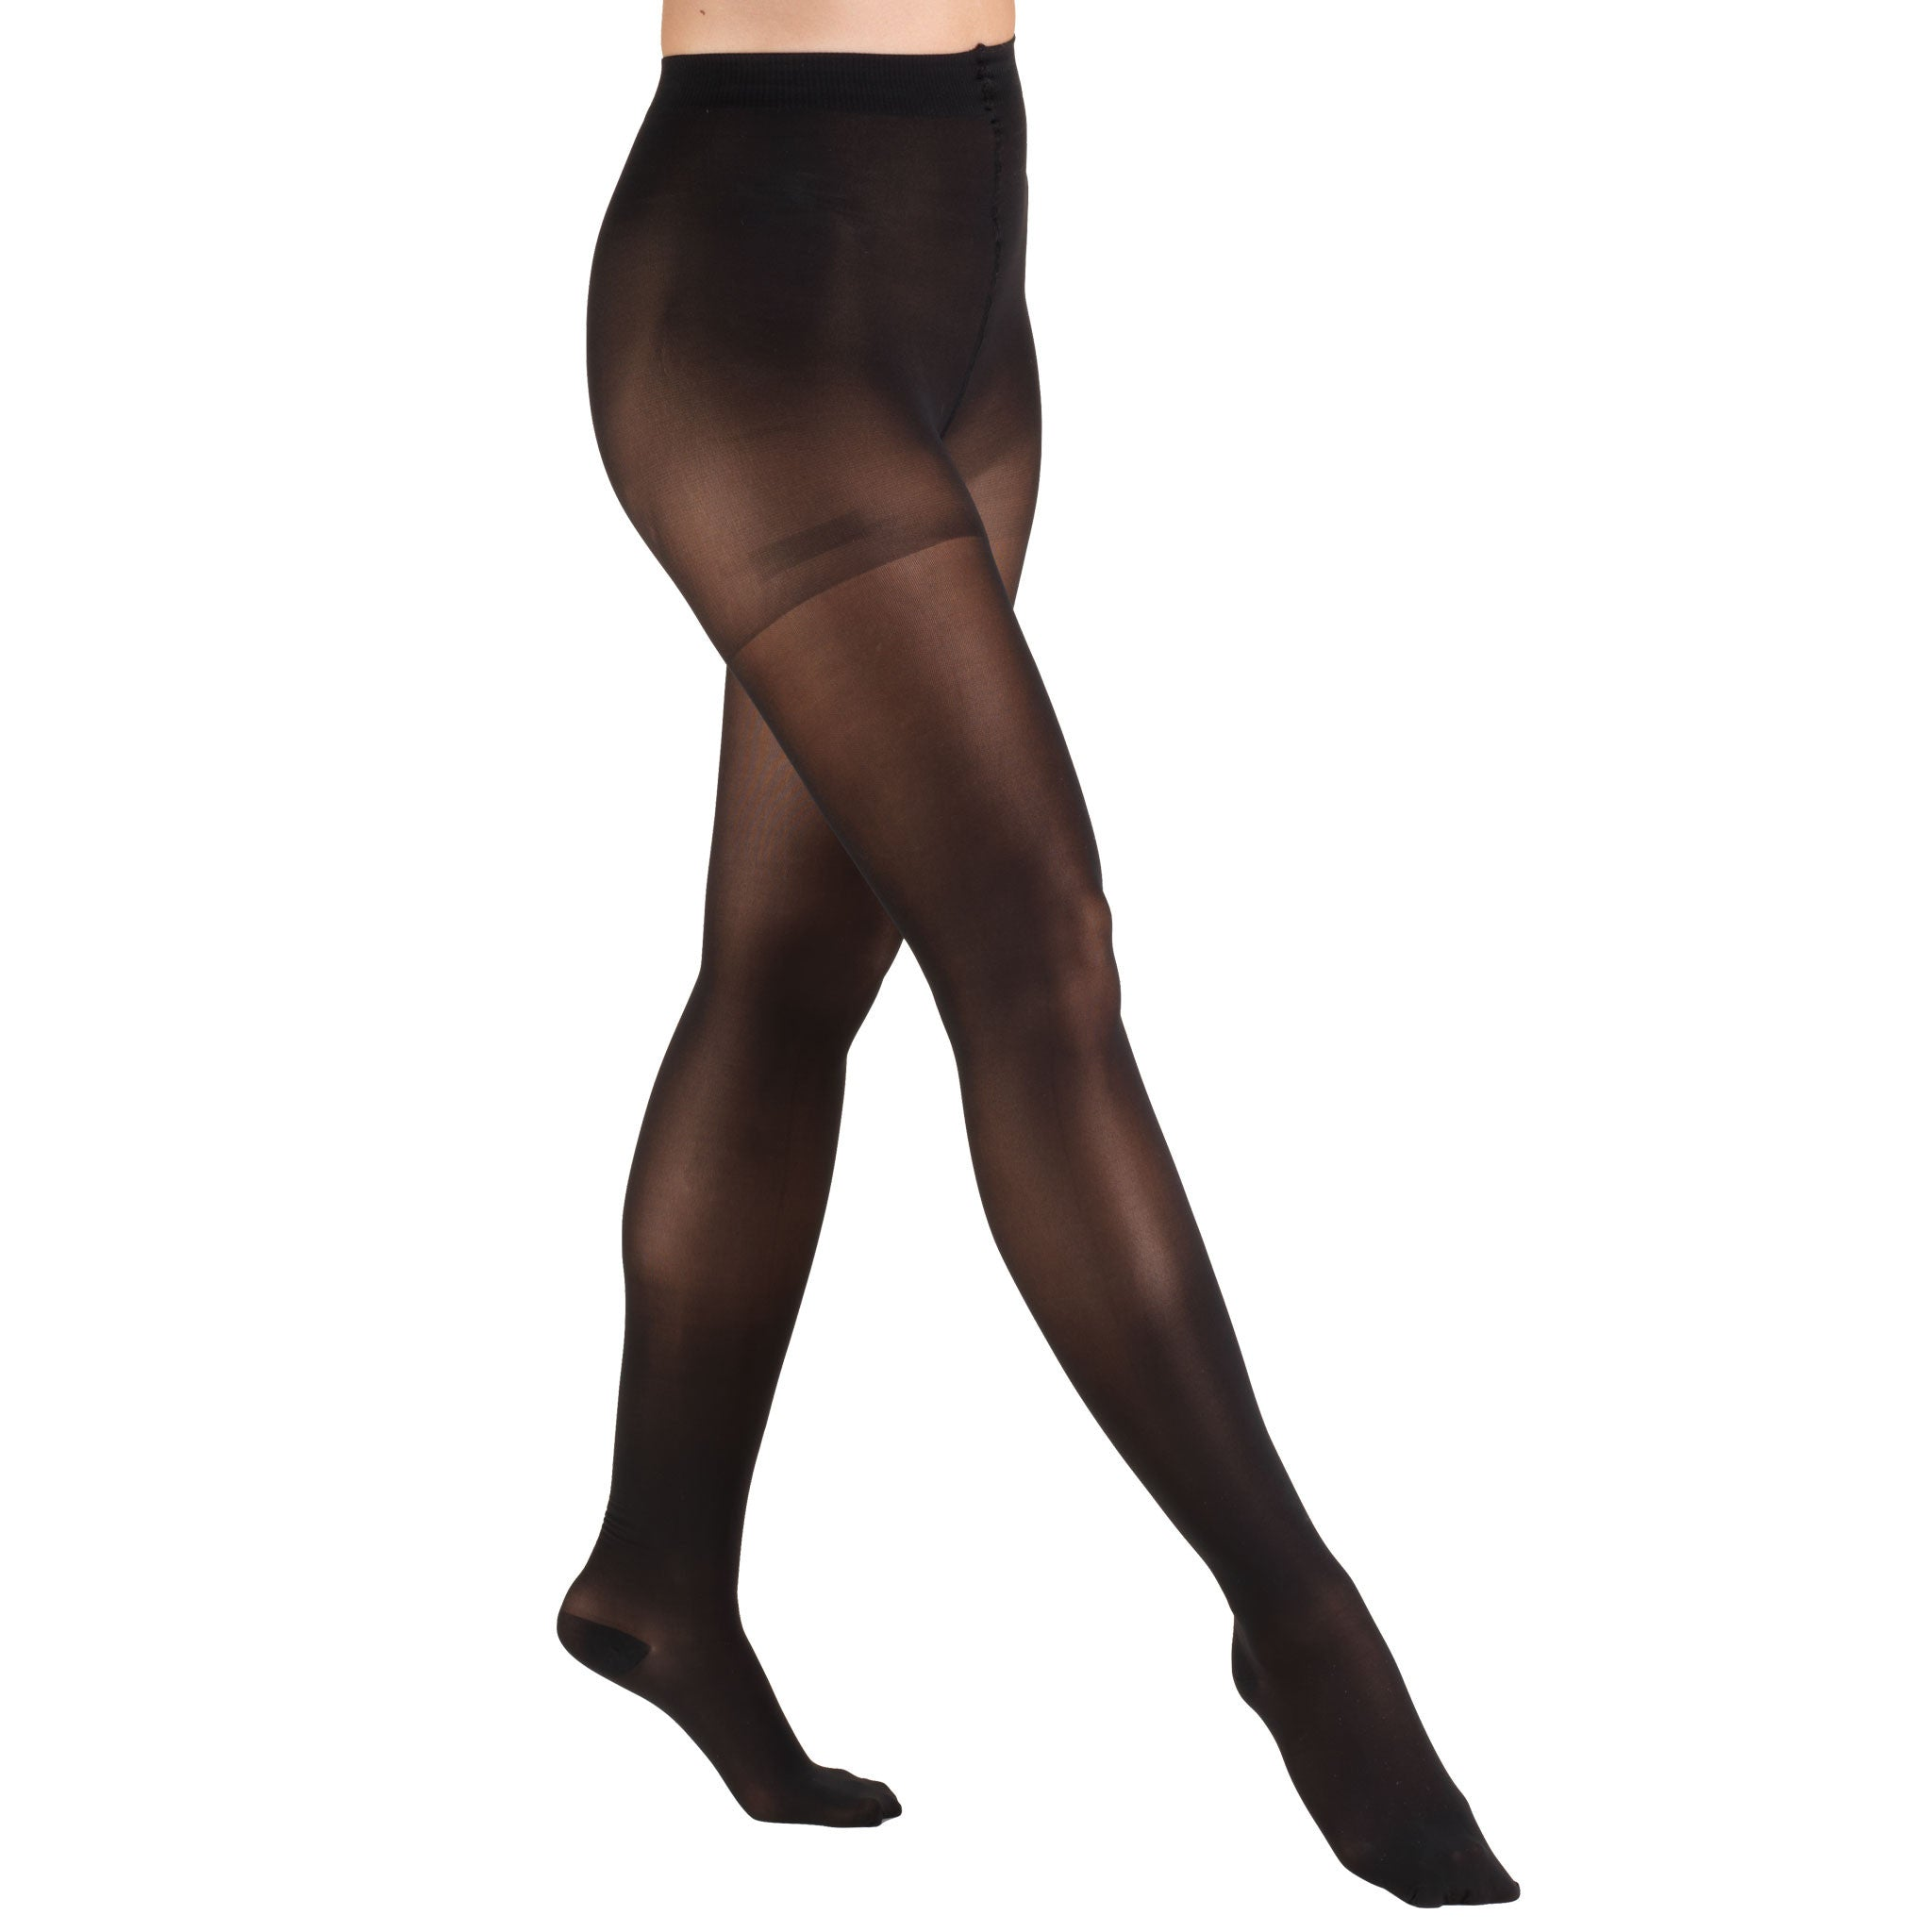 CLOSED TOE BLACK TRUSHEER PANTYHOSE